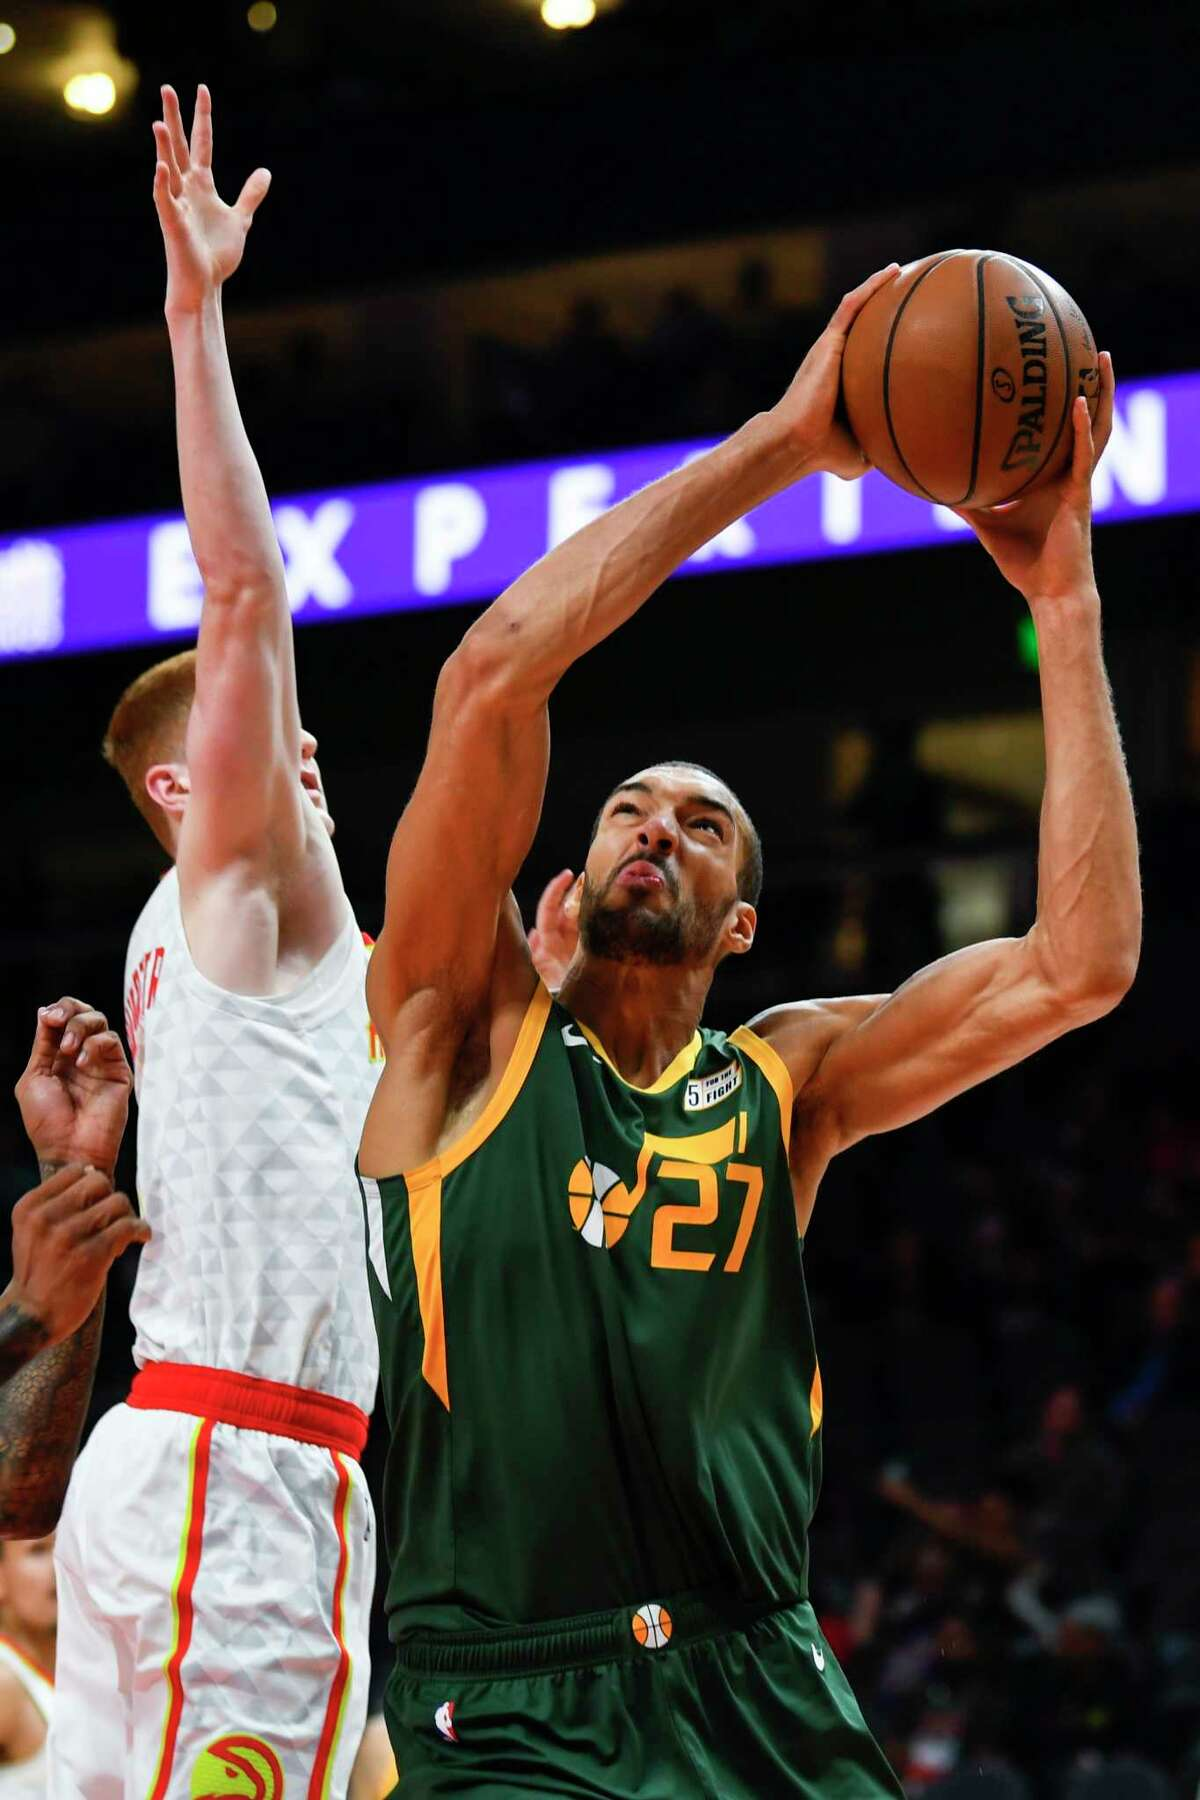 Utah Jazz center Rudy Gobert (27) shoots as Atlanta Hawks guard Kevin Huerter defends during the first half of an NBA basketball game Thursday, March 21, 2019, in Atlanta. (AP Photo/John Amis)